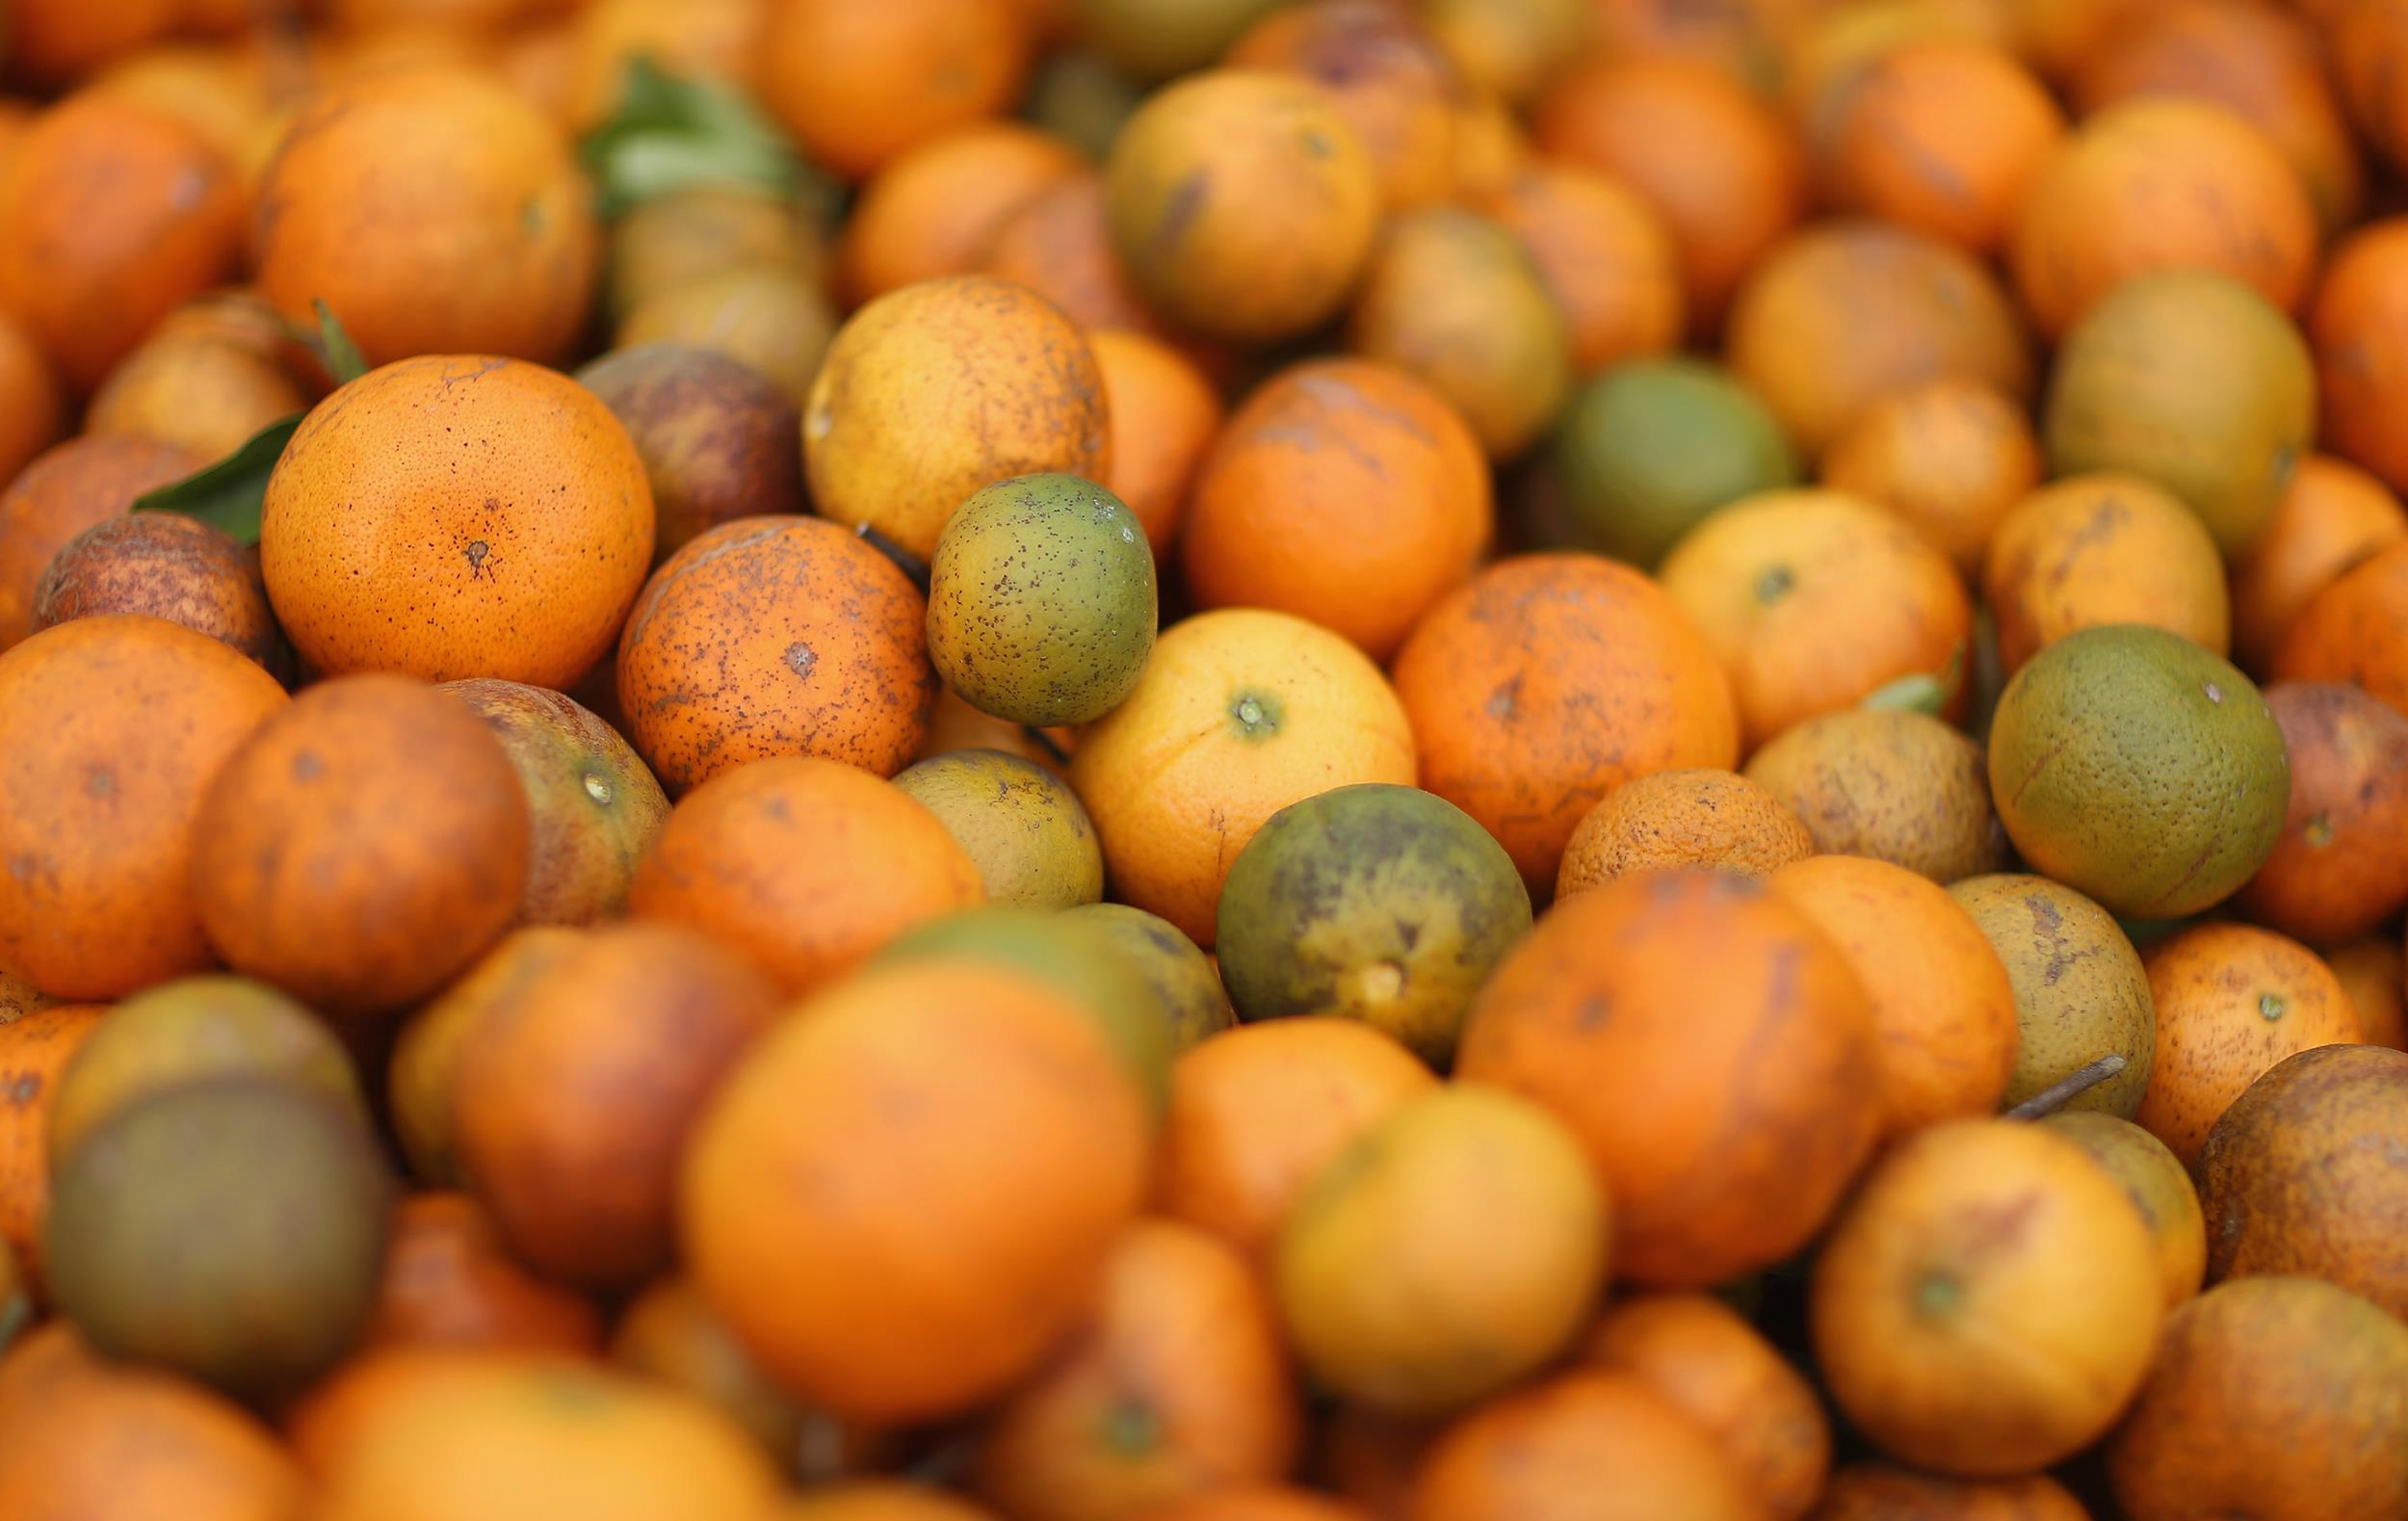 Image: Tangerines are seen in a bin as the citrus industry tries to find a cure for the disease